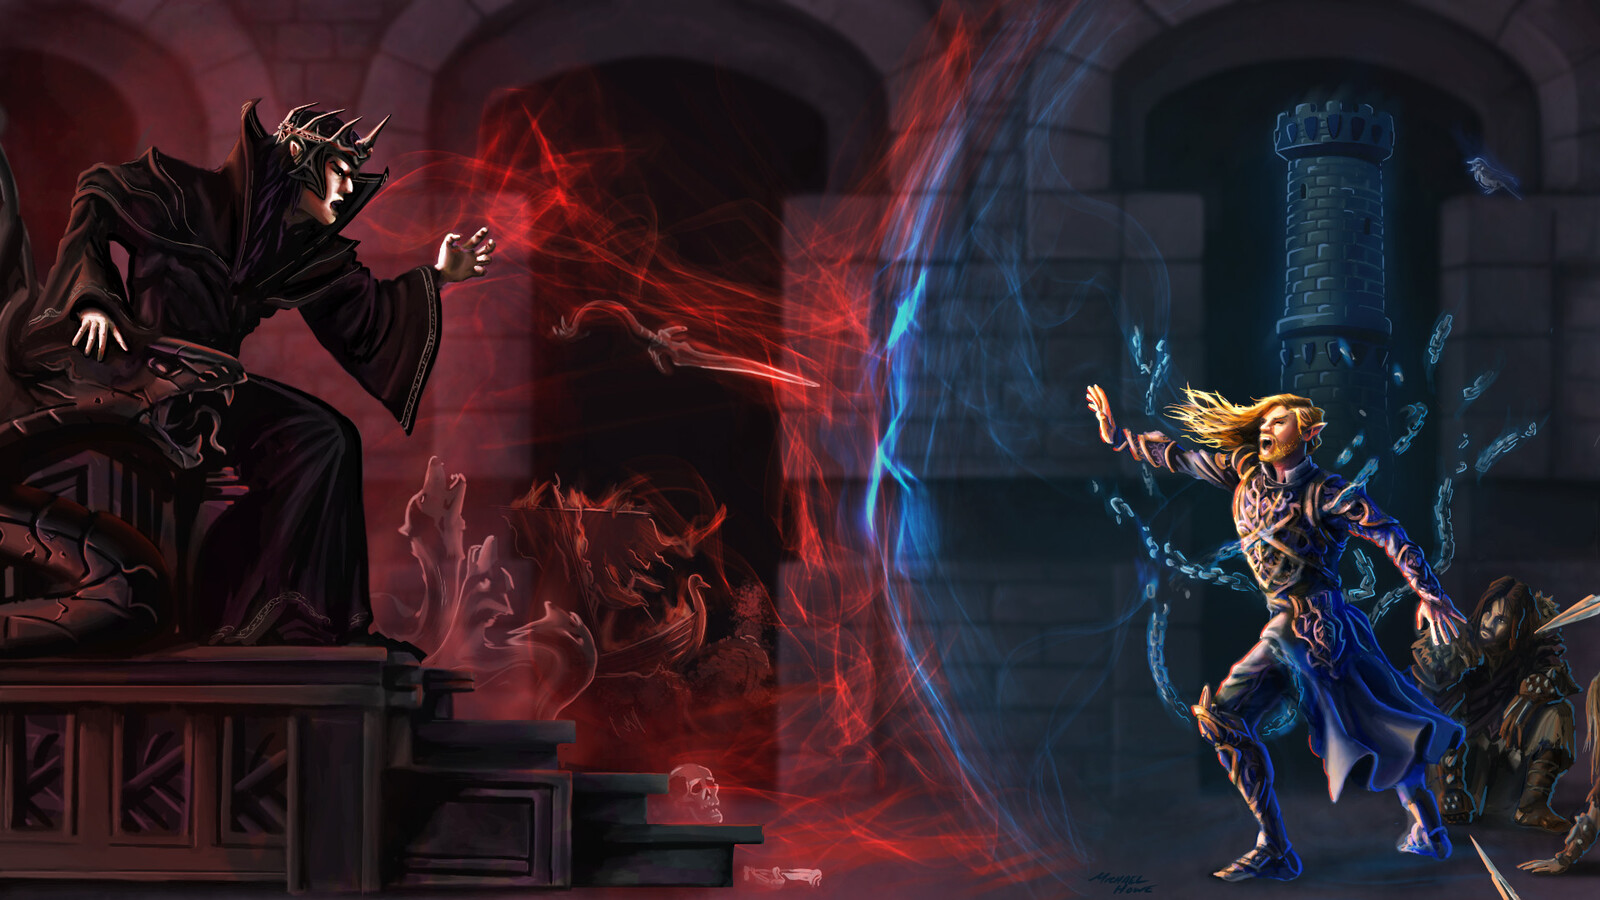 ArtStation - The Battle of Finrod and Sauron - Song Art, Michael Howe